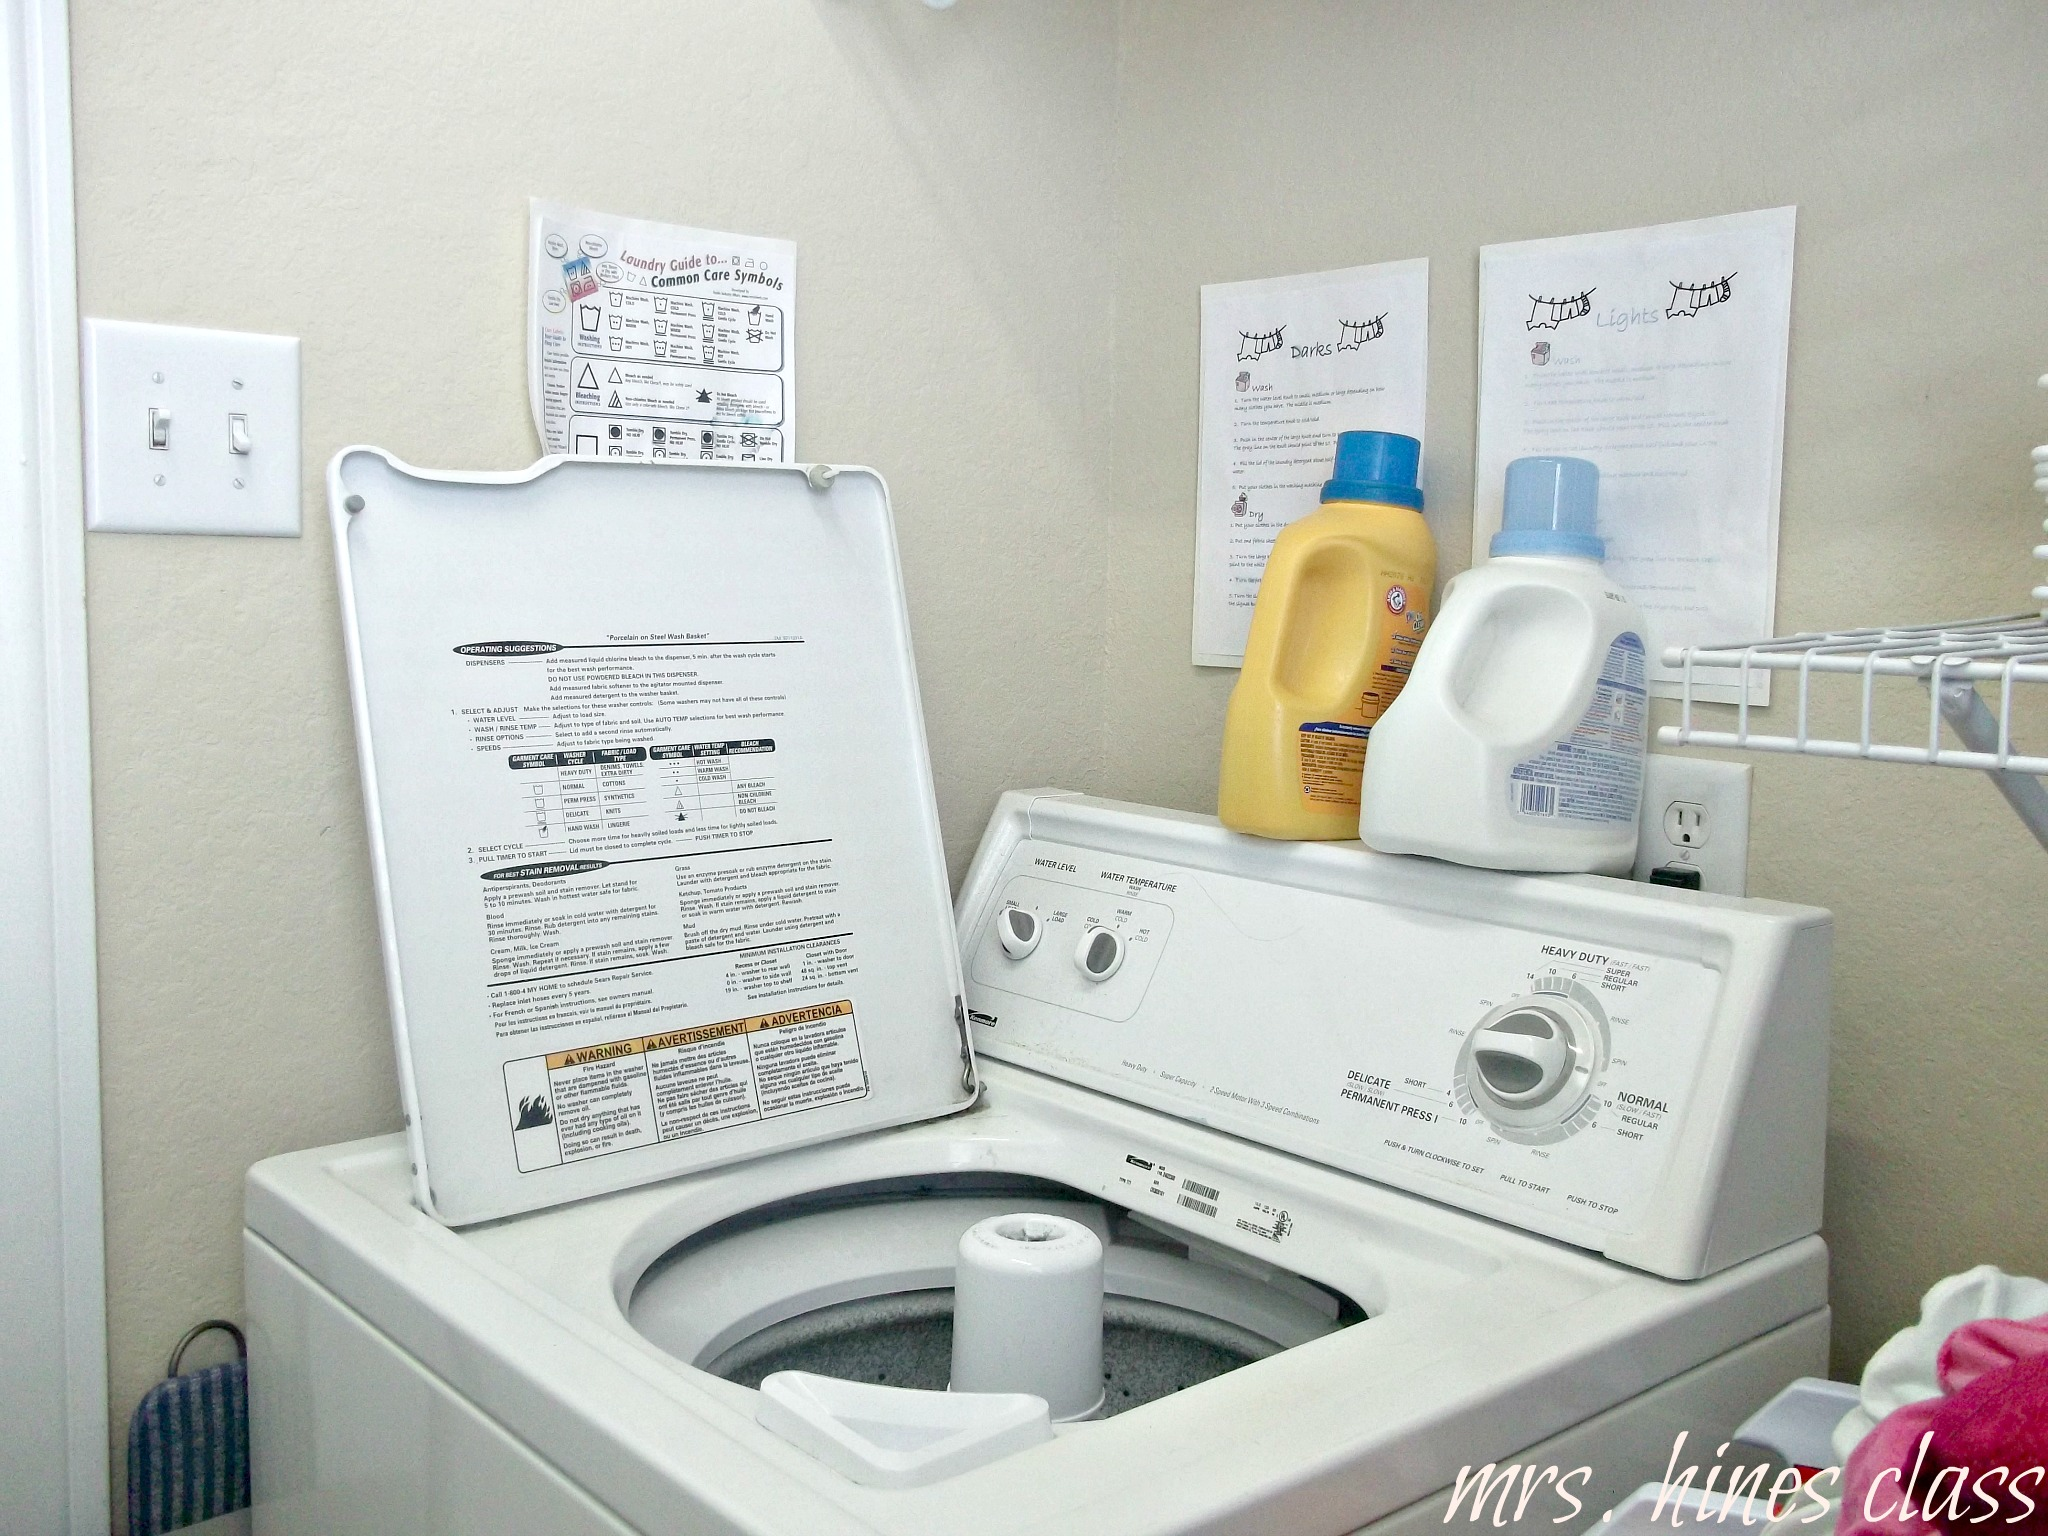 How to Clean Your Washing Machine: Mrs. Hines' Class